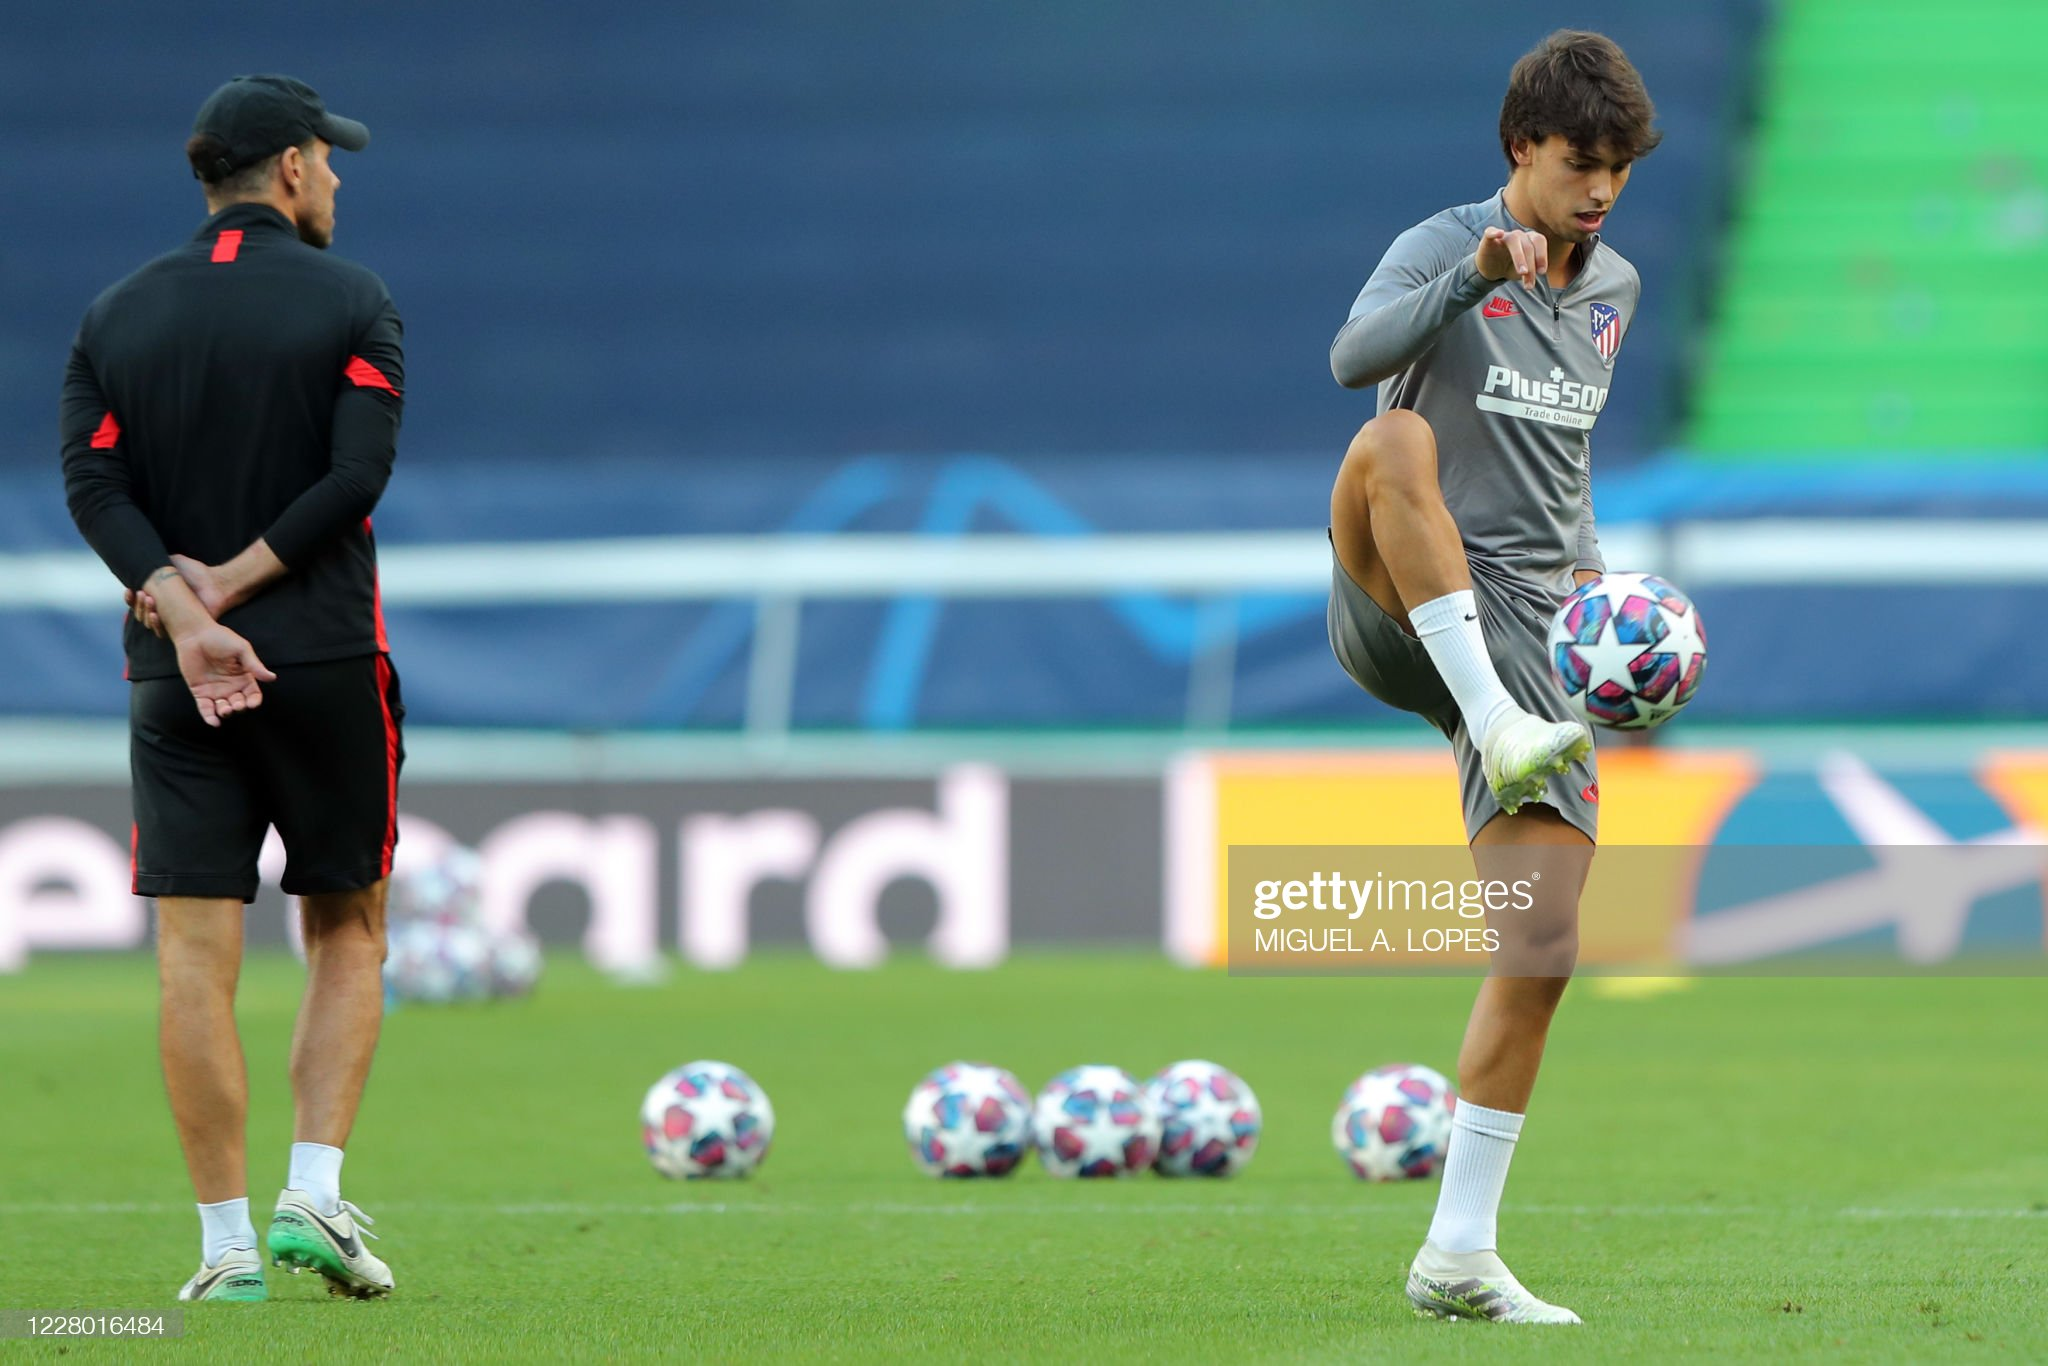 FBL-EUR-C1-ATLETICO MADRID-TRAINING : News Photo